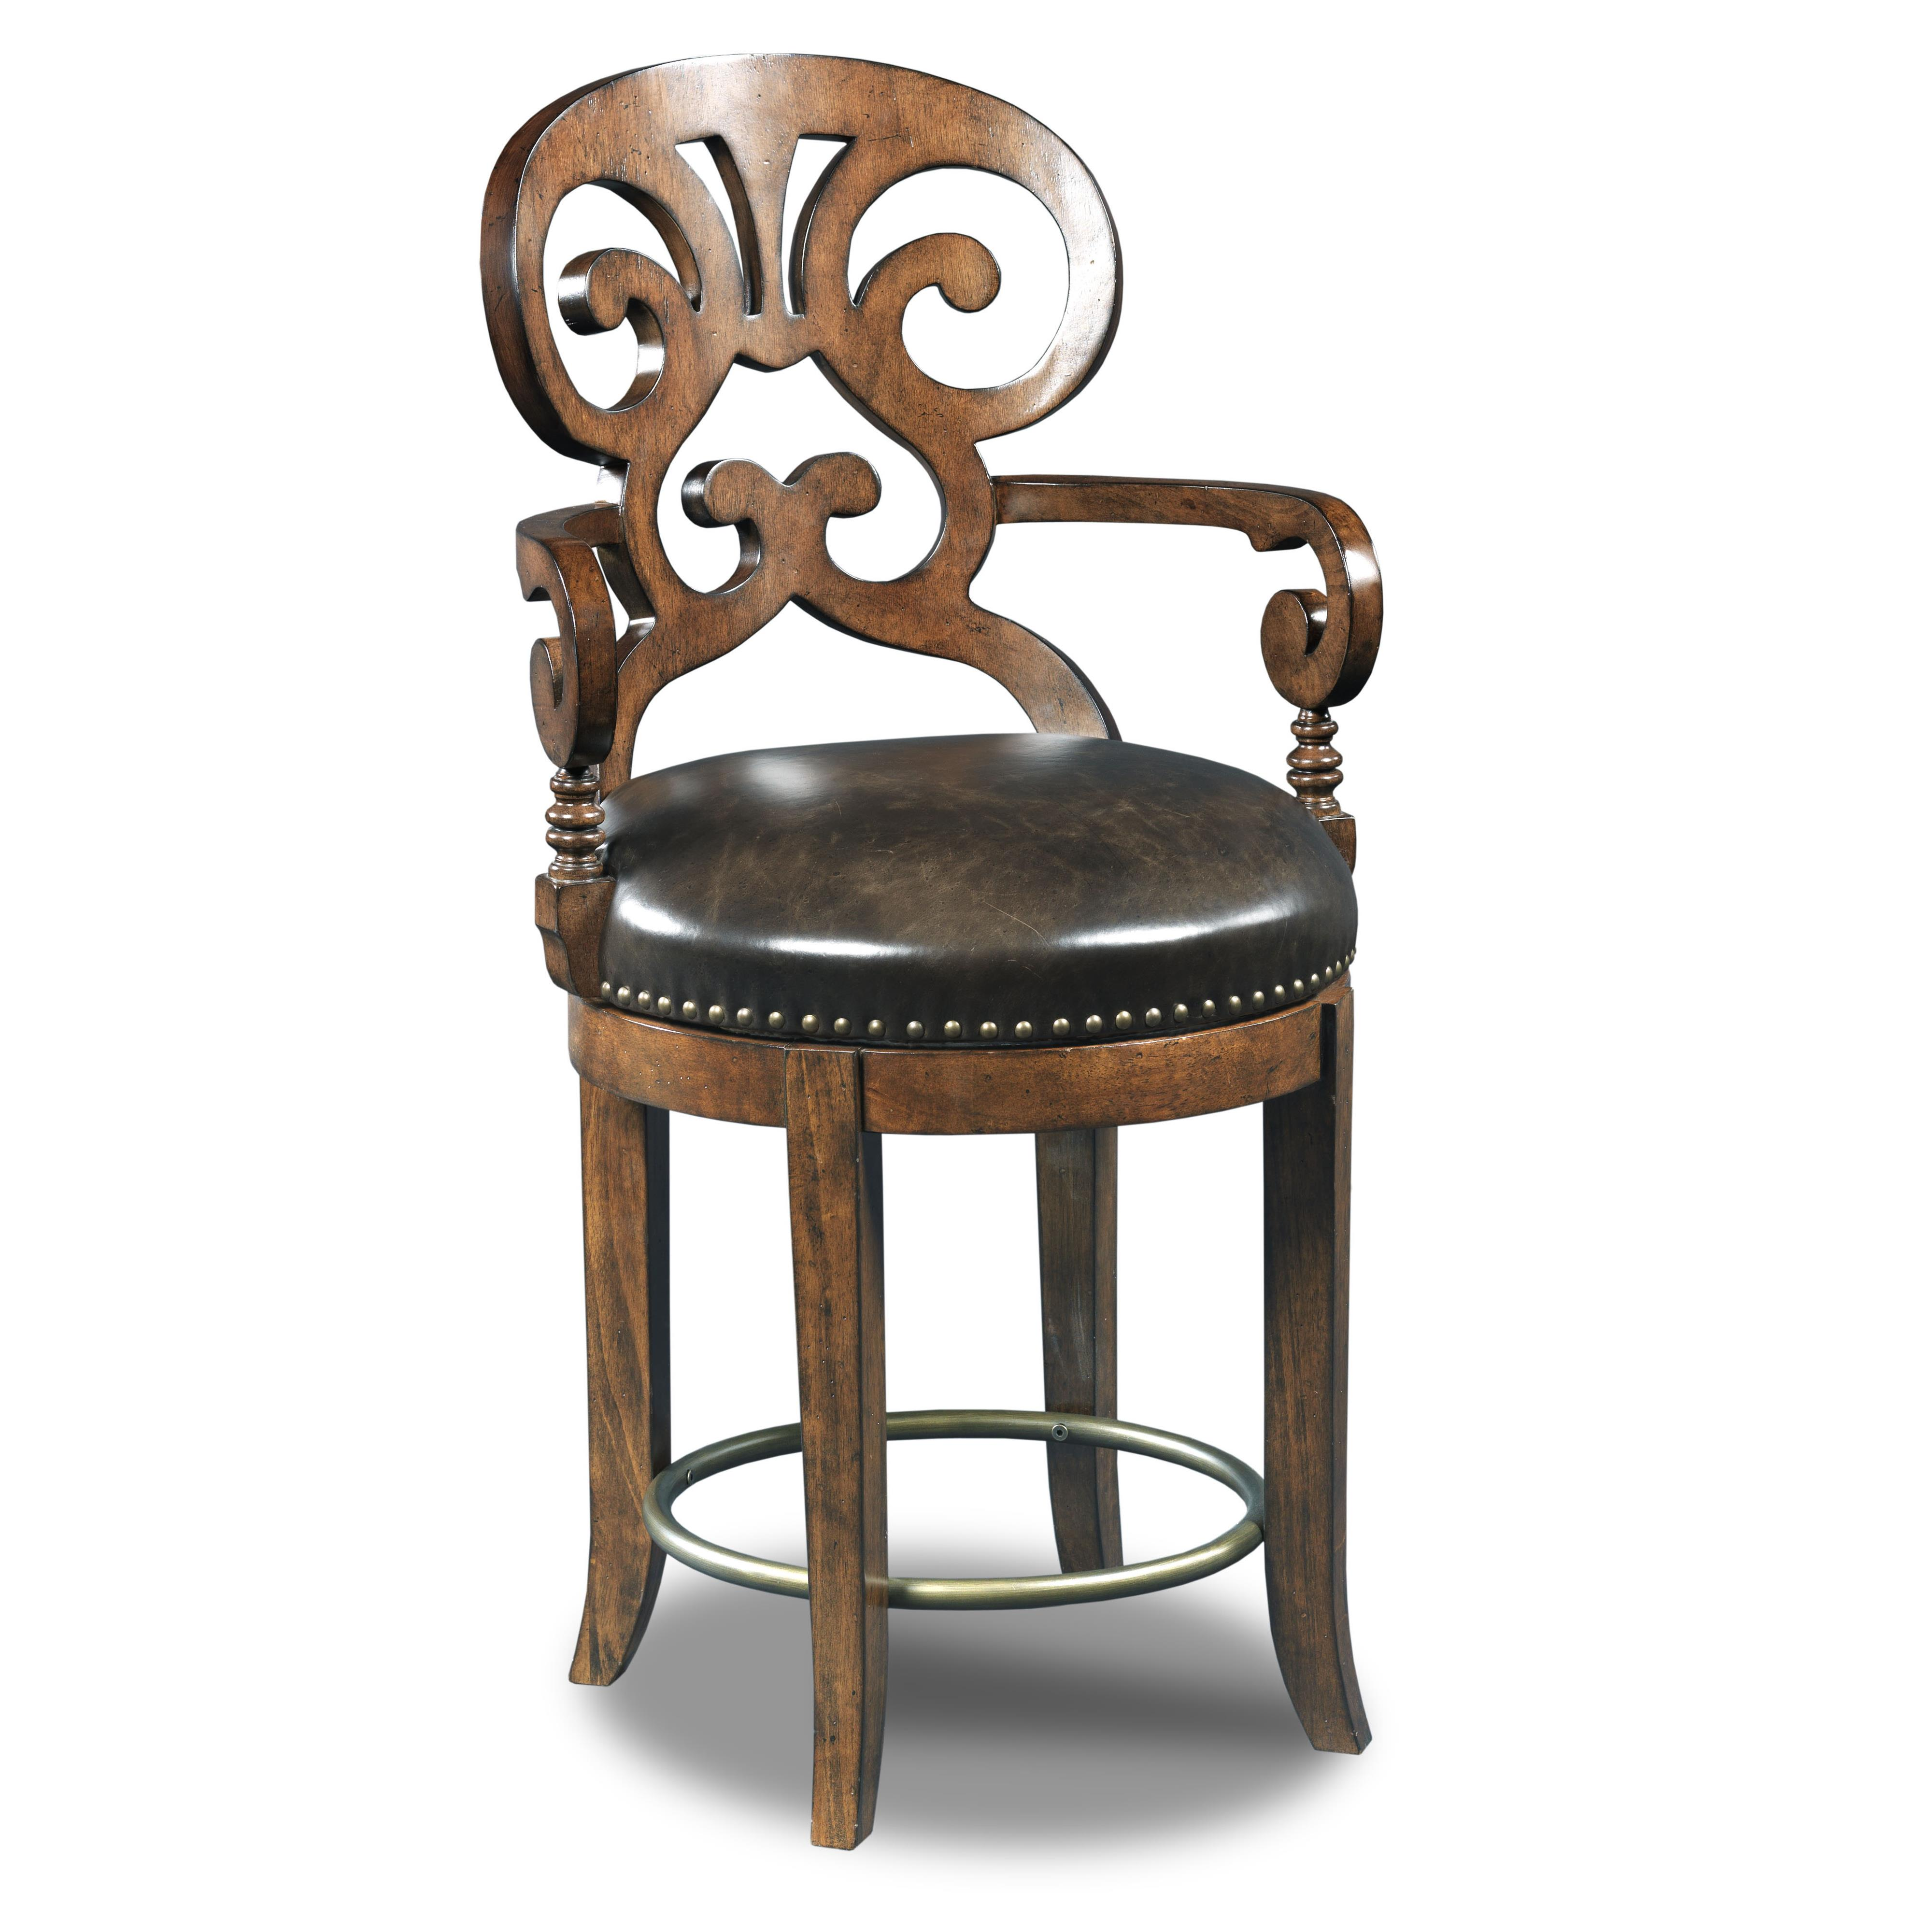 Hooker Furniture Stools Dark Jameson Traditional Leather Counter Stool - Item Number: 300-25016